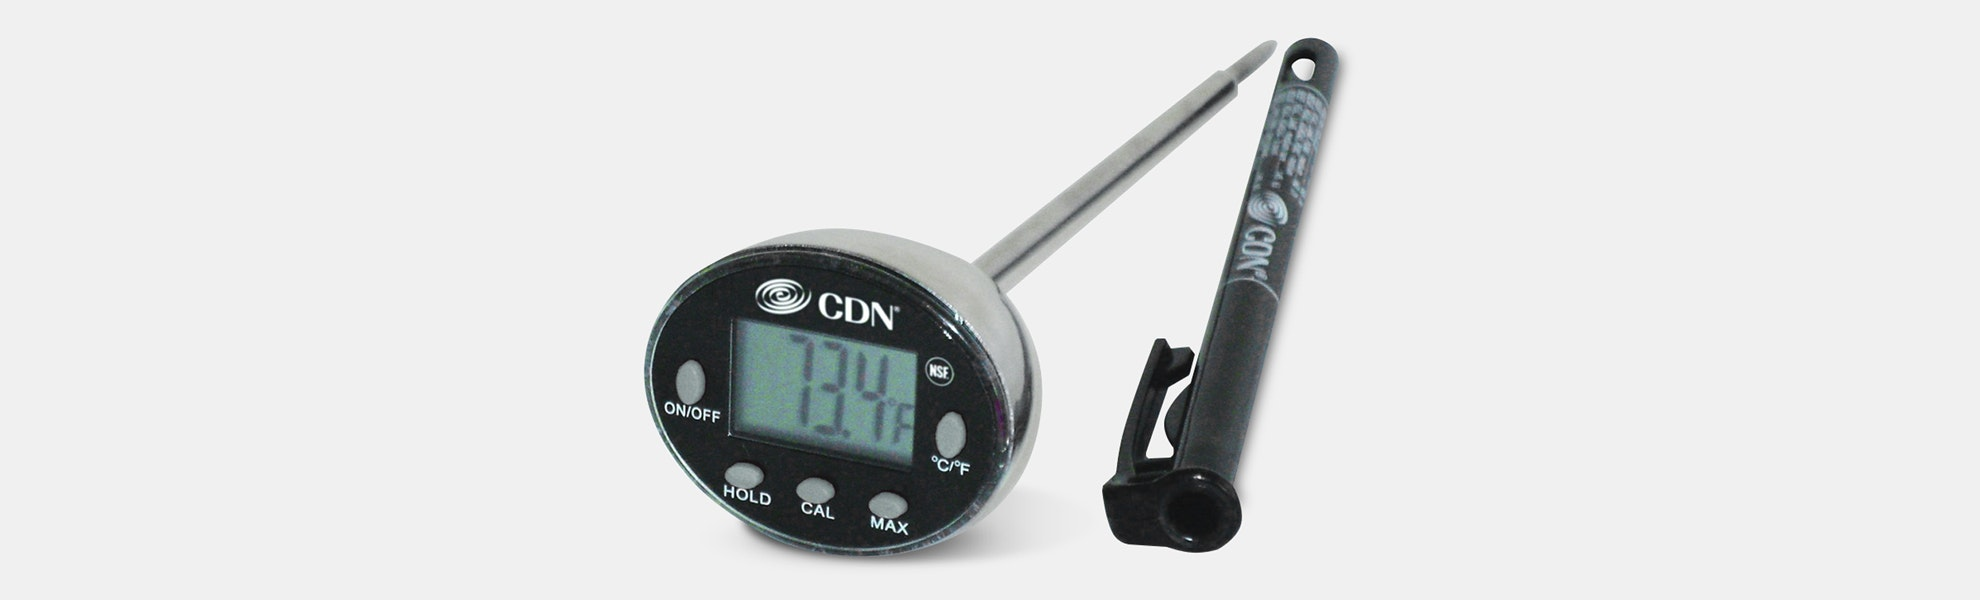 CDN DTQ450X ProAccurate Instant-Read Thermometer